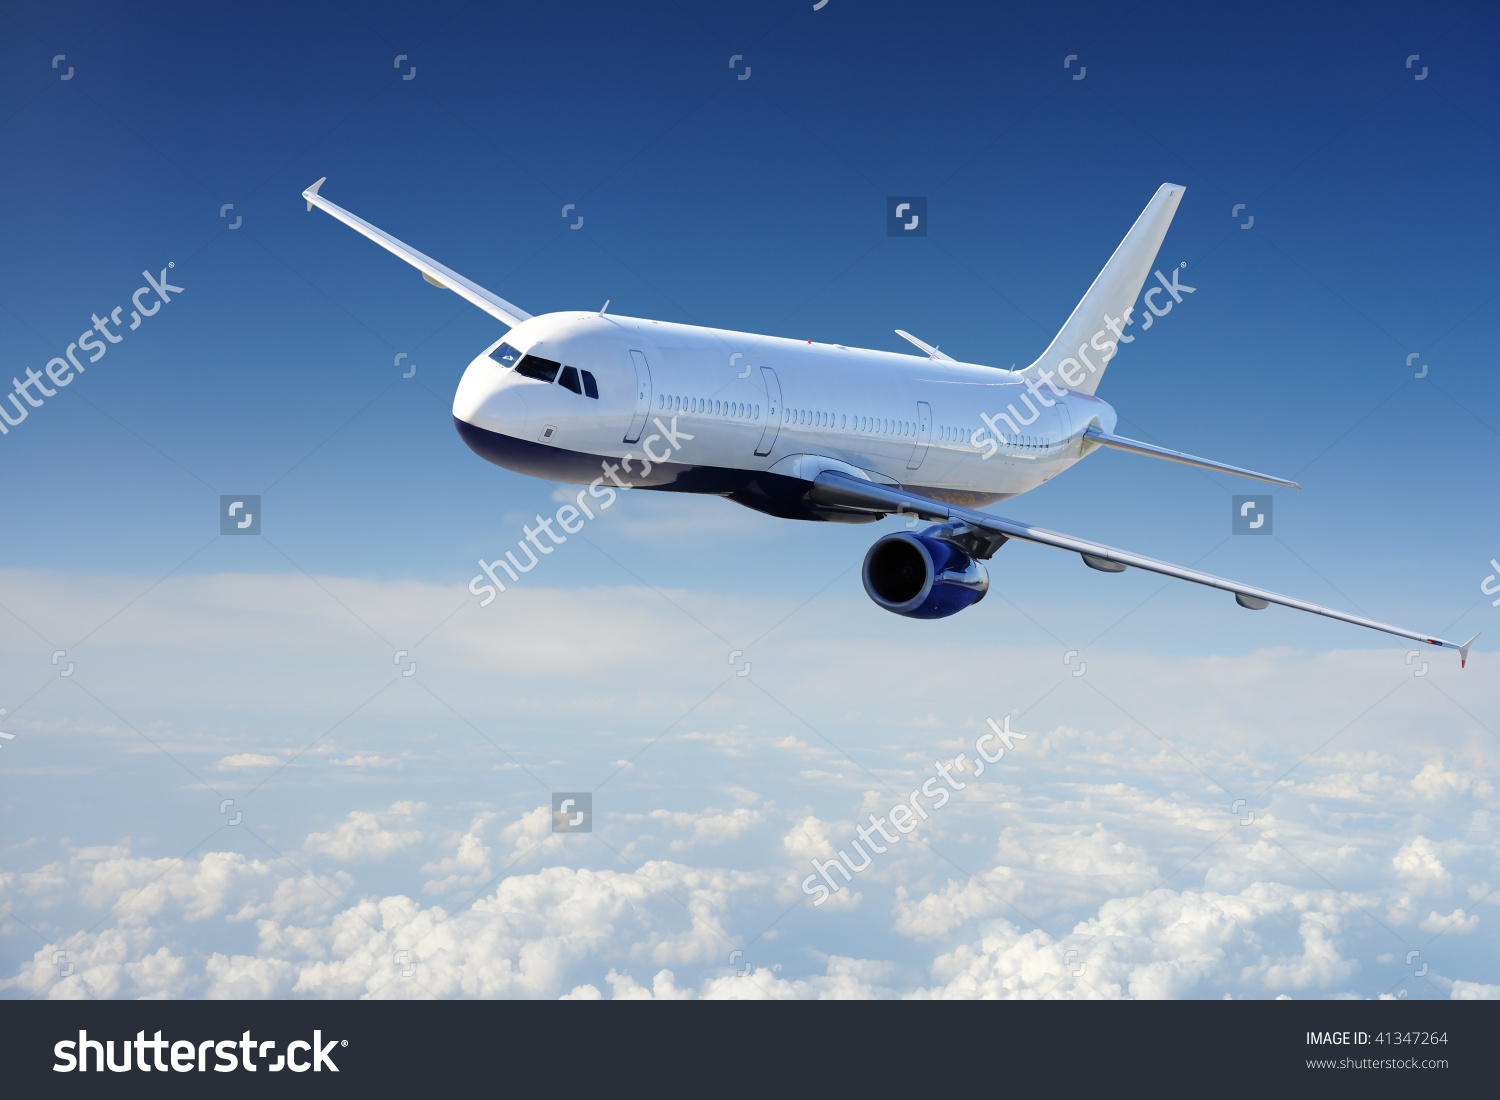 stock photo airplane in